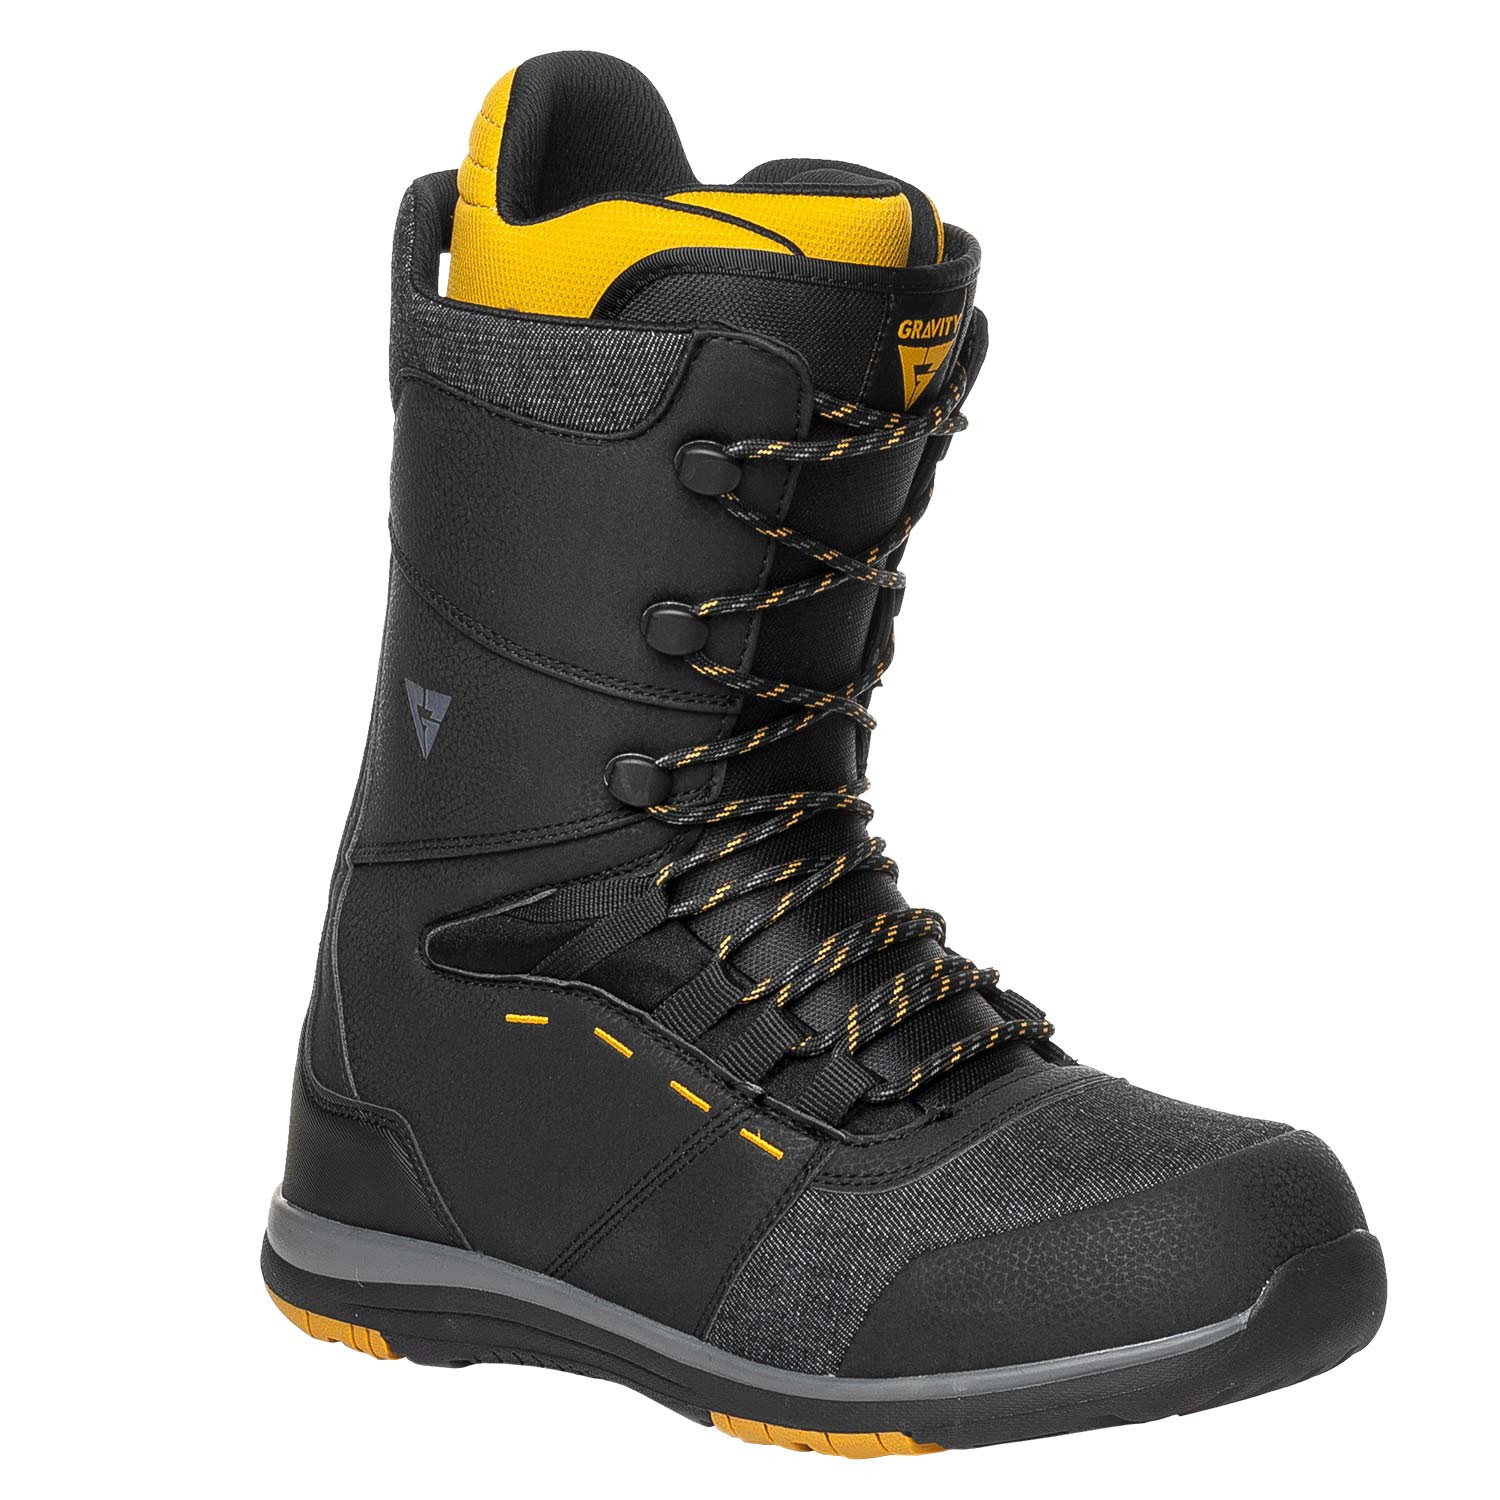 Boty Gravity Manual black/yellow